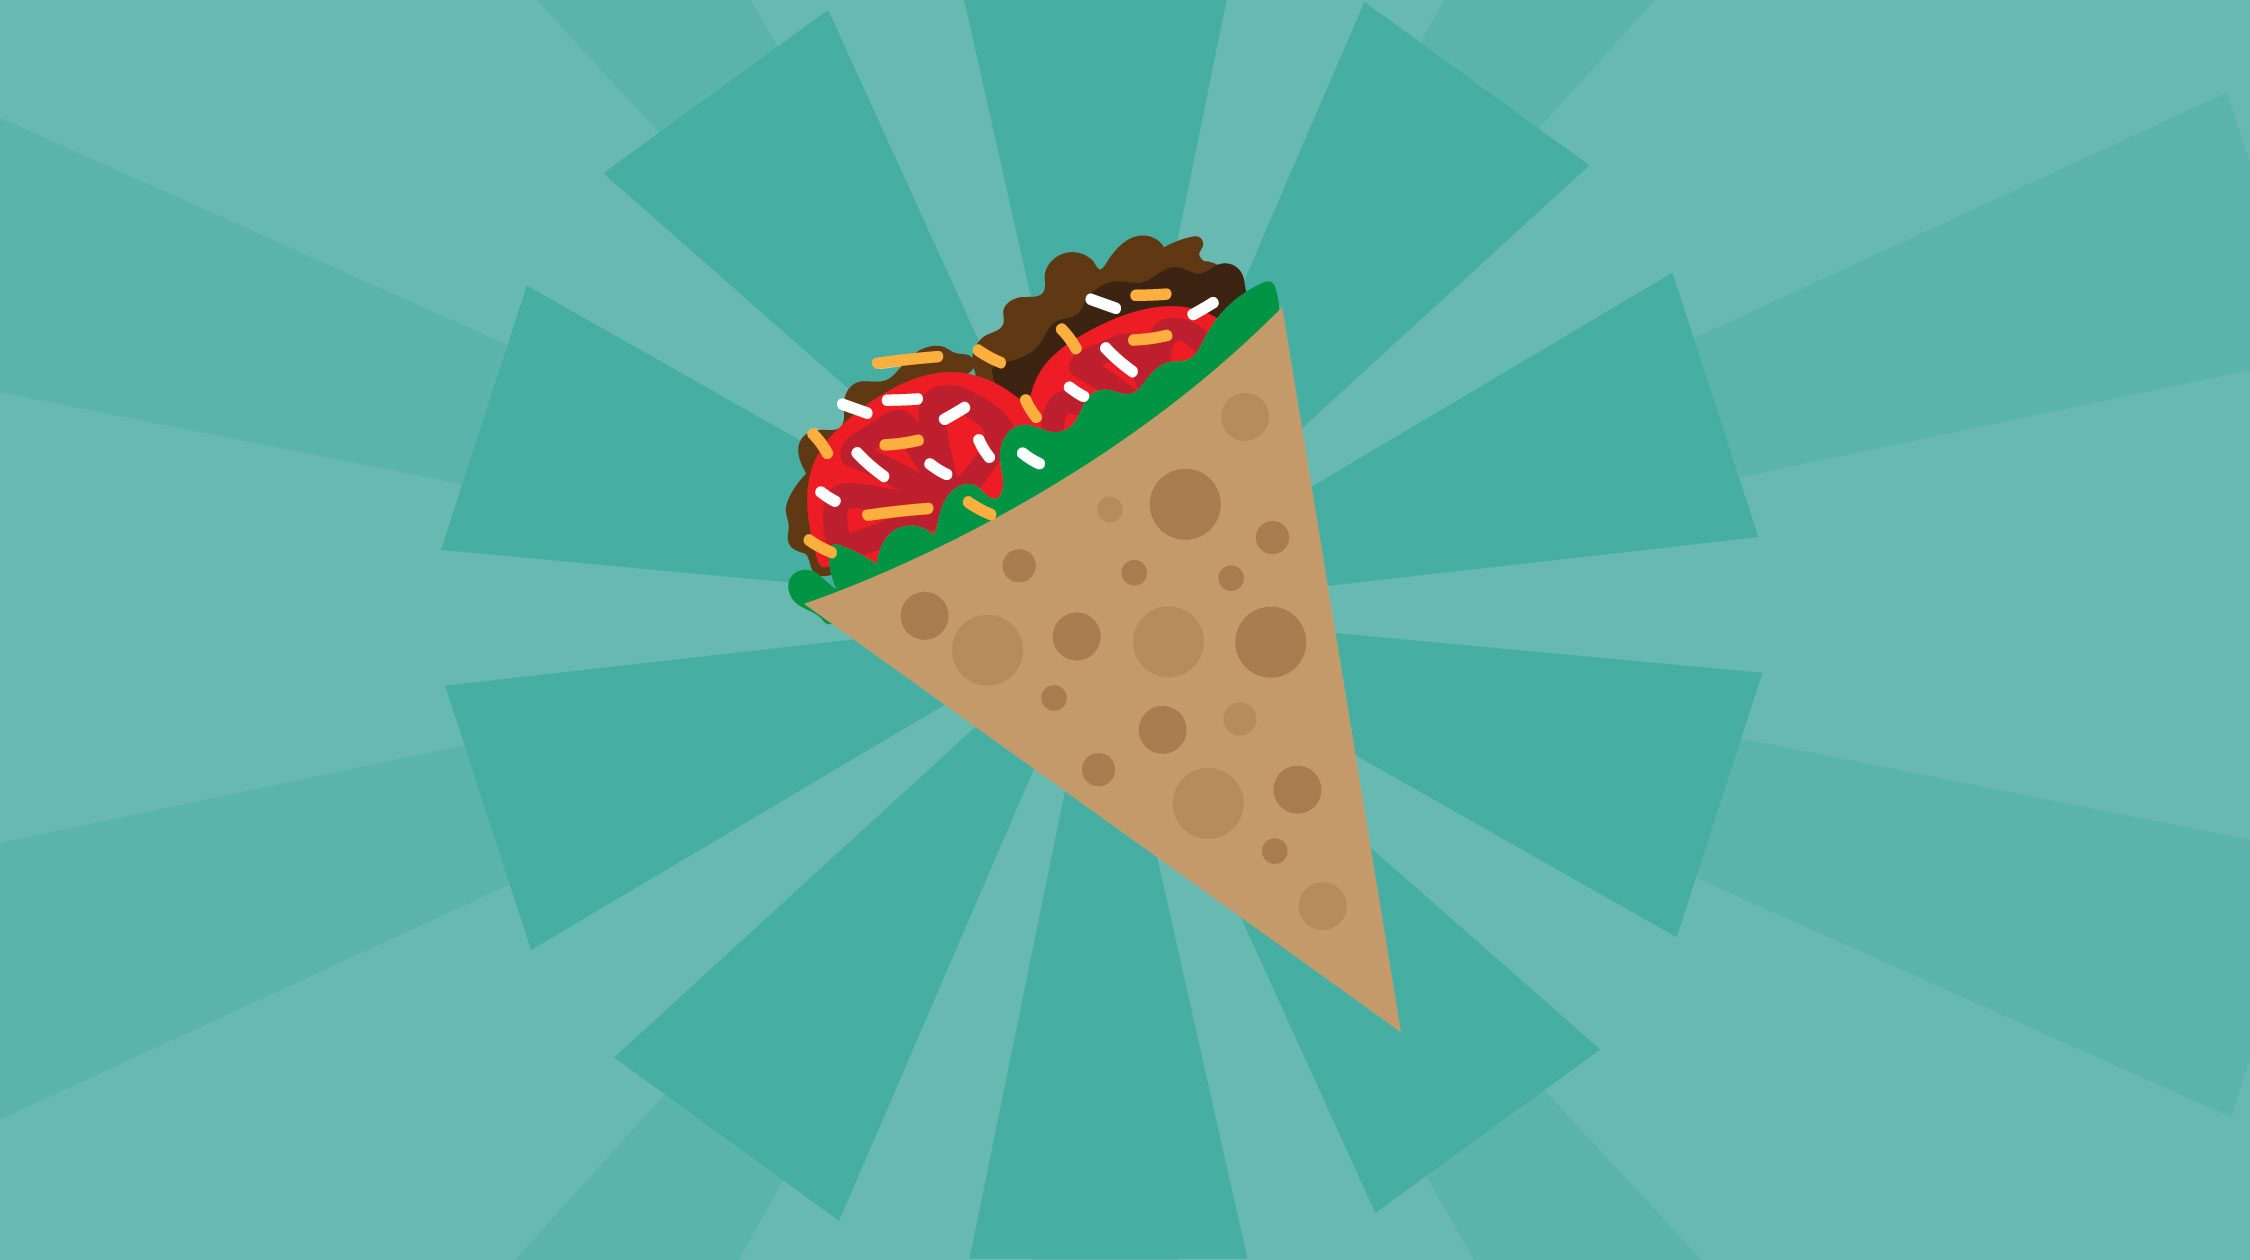 Art of a cone with taco fillings against a blue background